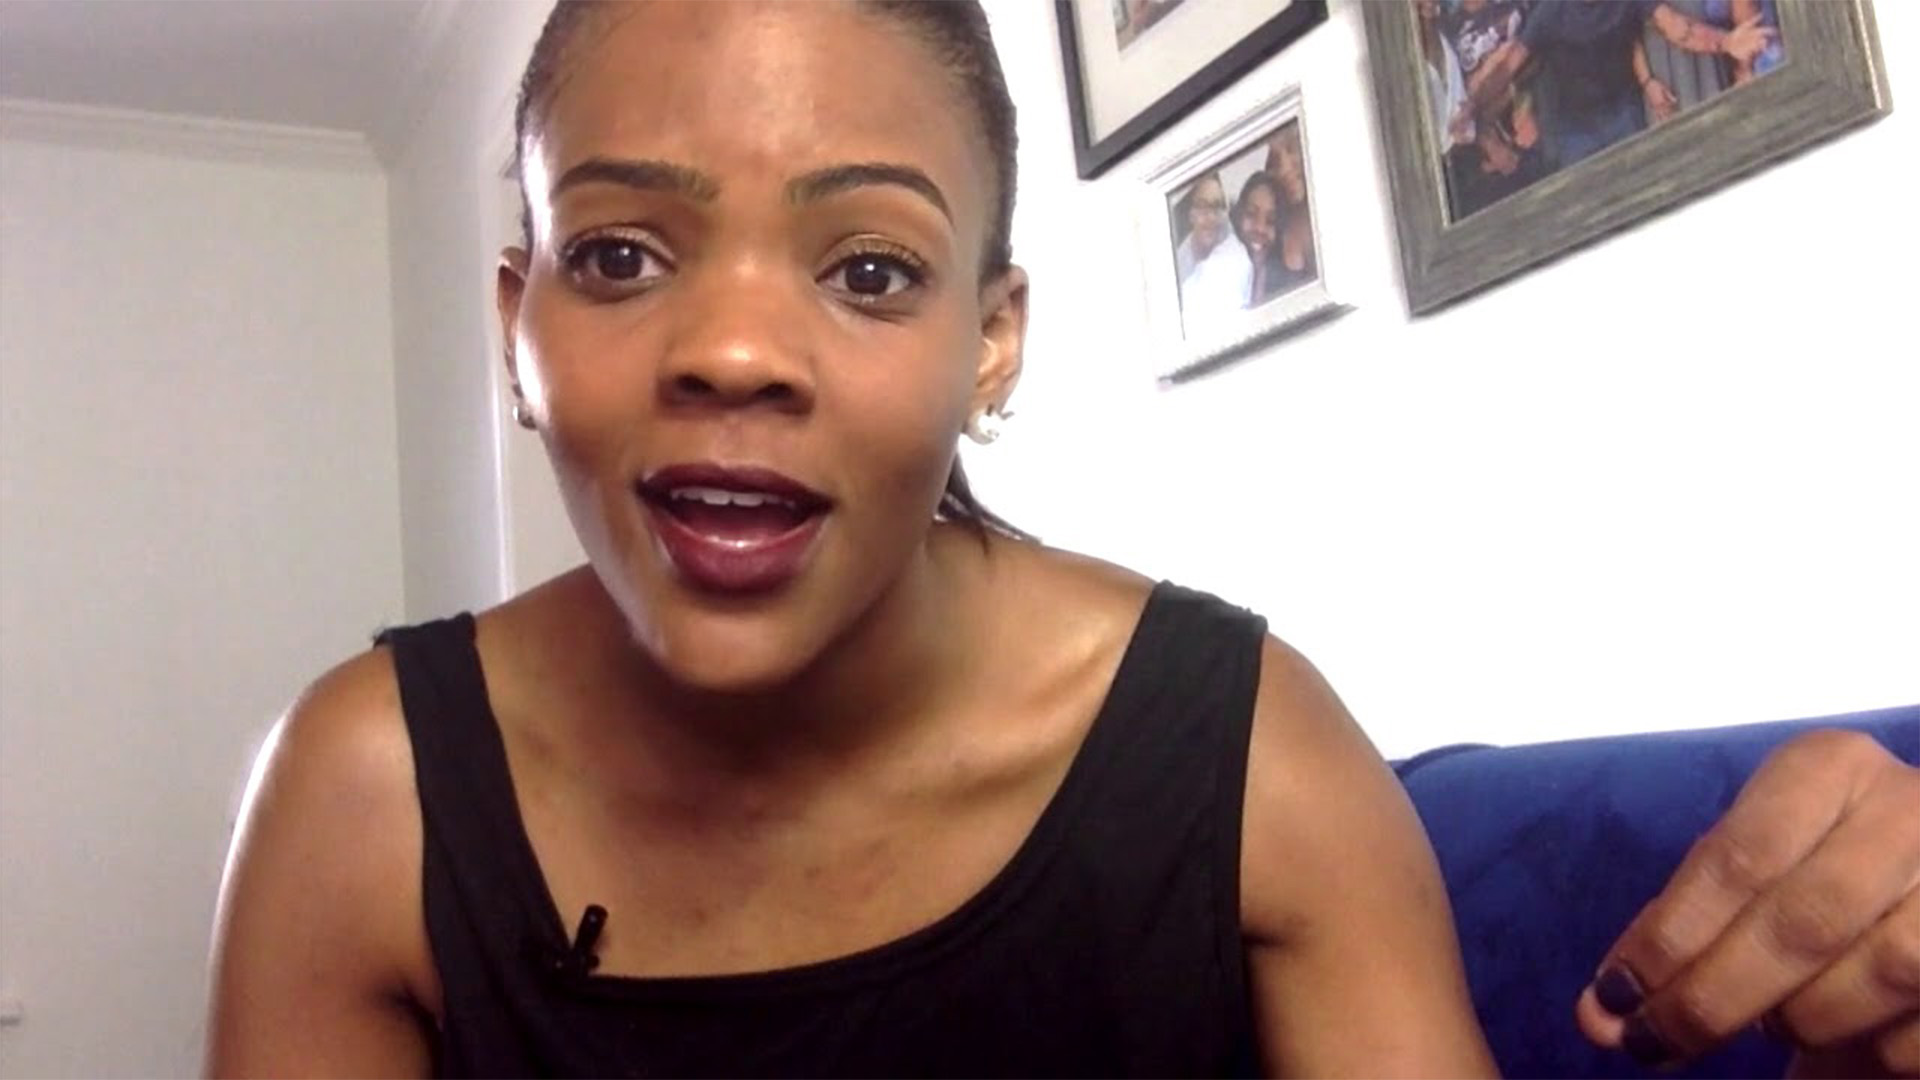 Candace Owens Image: Candace Owens Wants To Dox Us For Typing